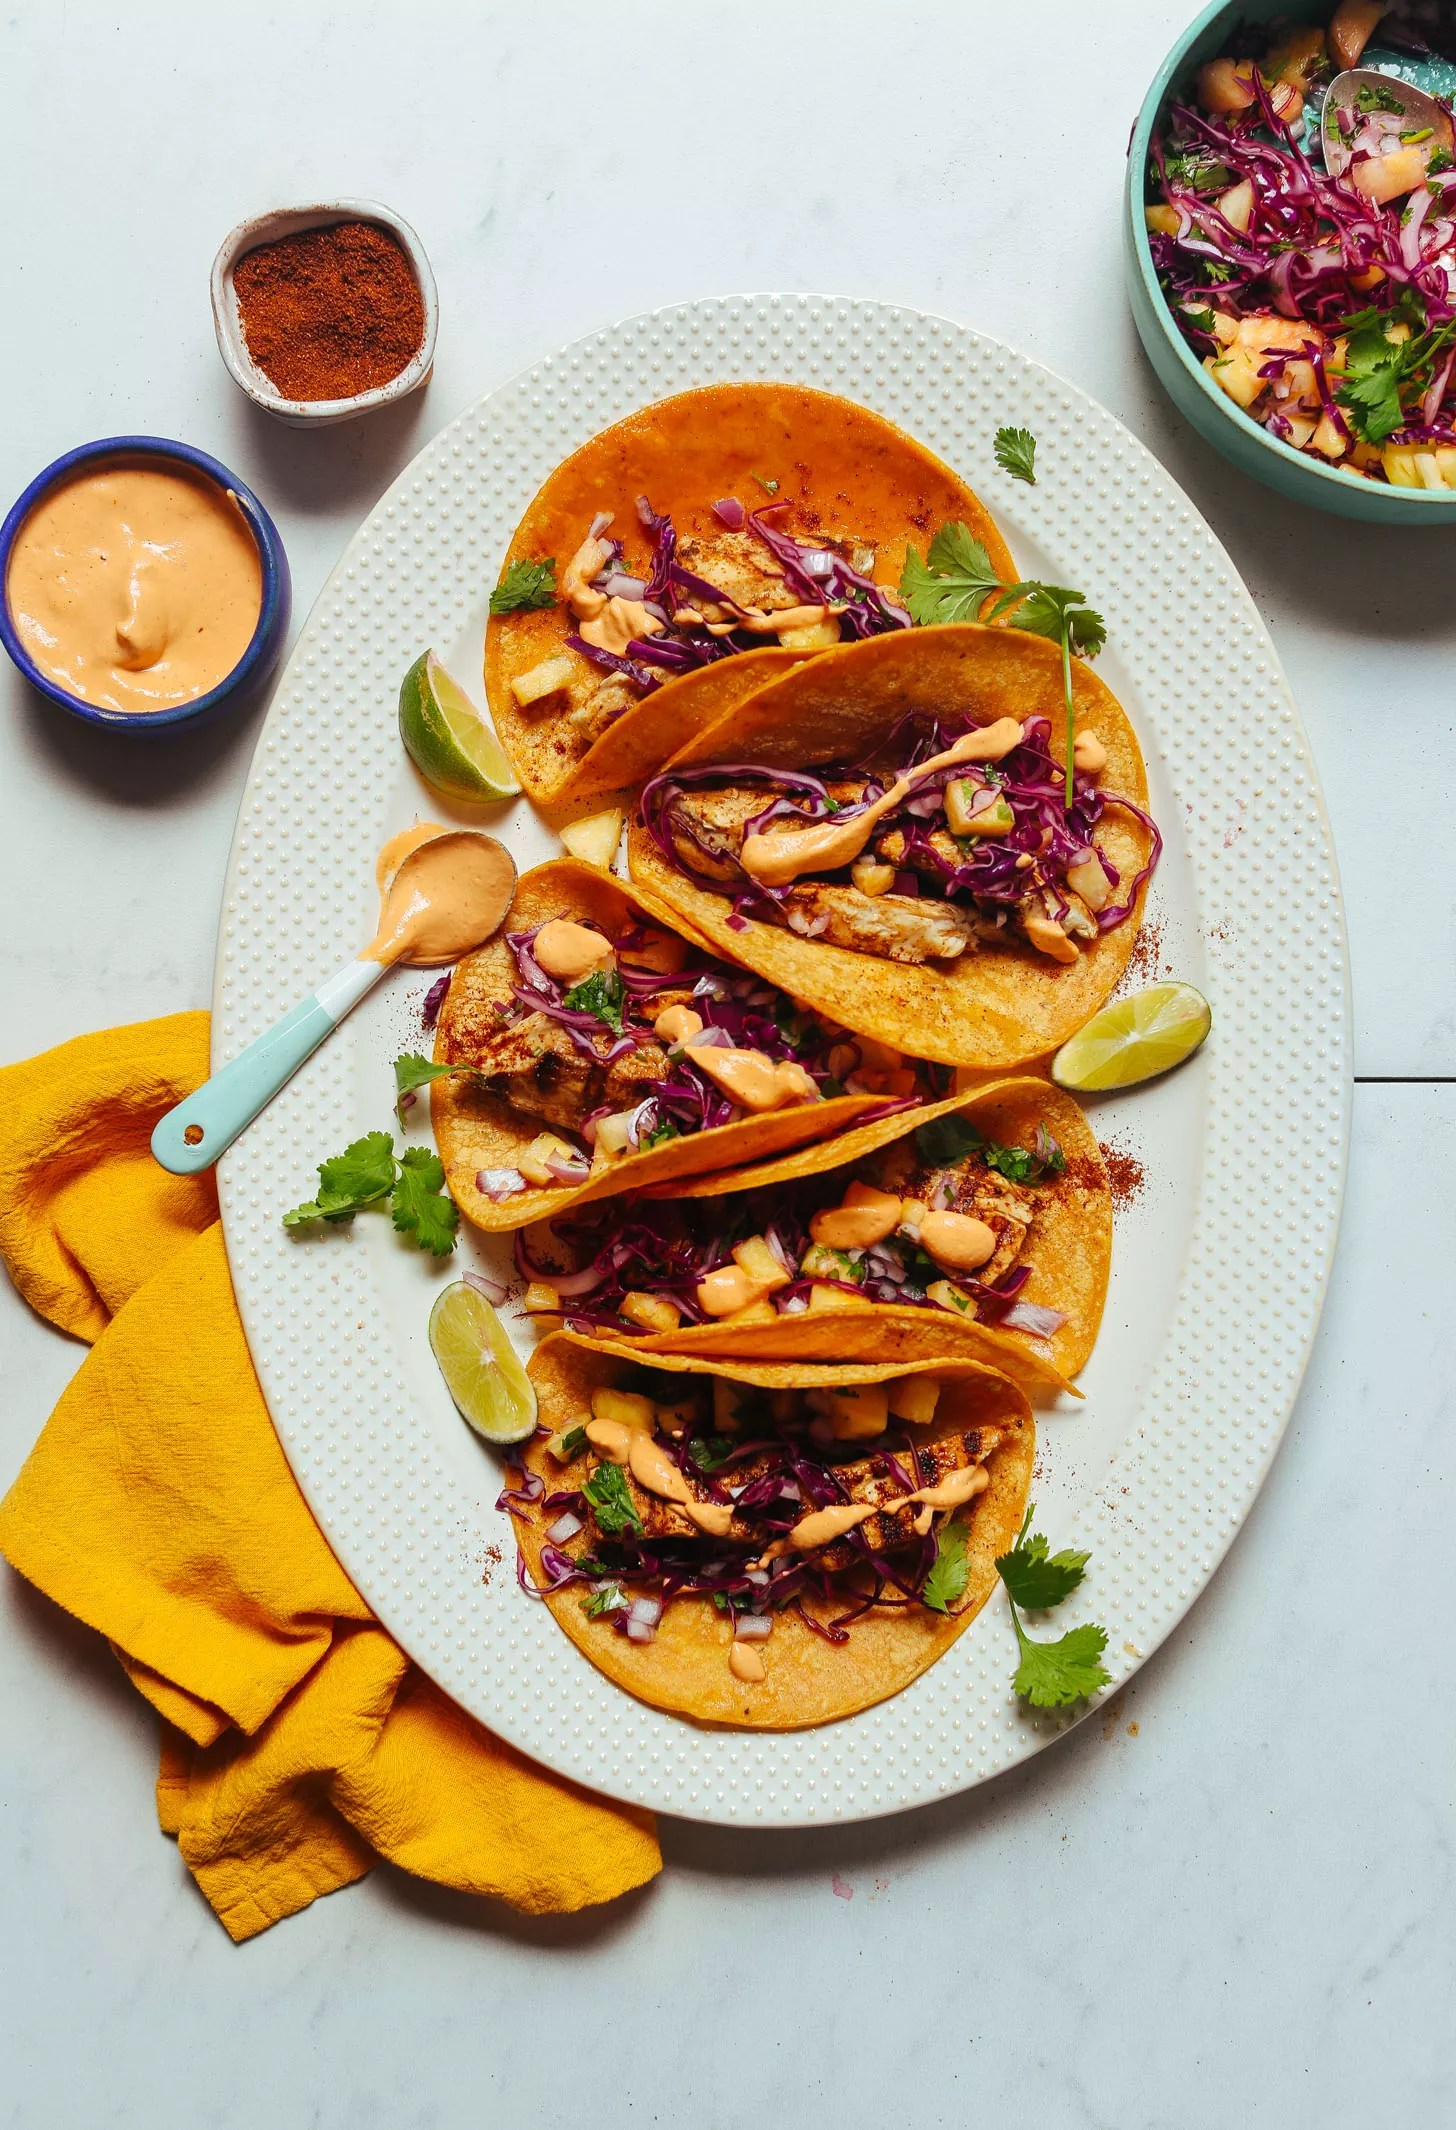 grilled fish taco recipe with cabbage slaw